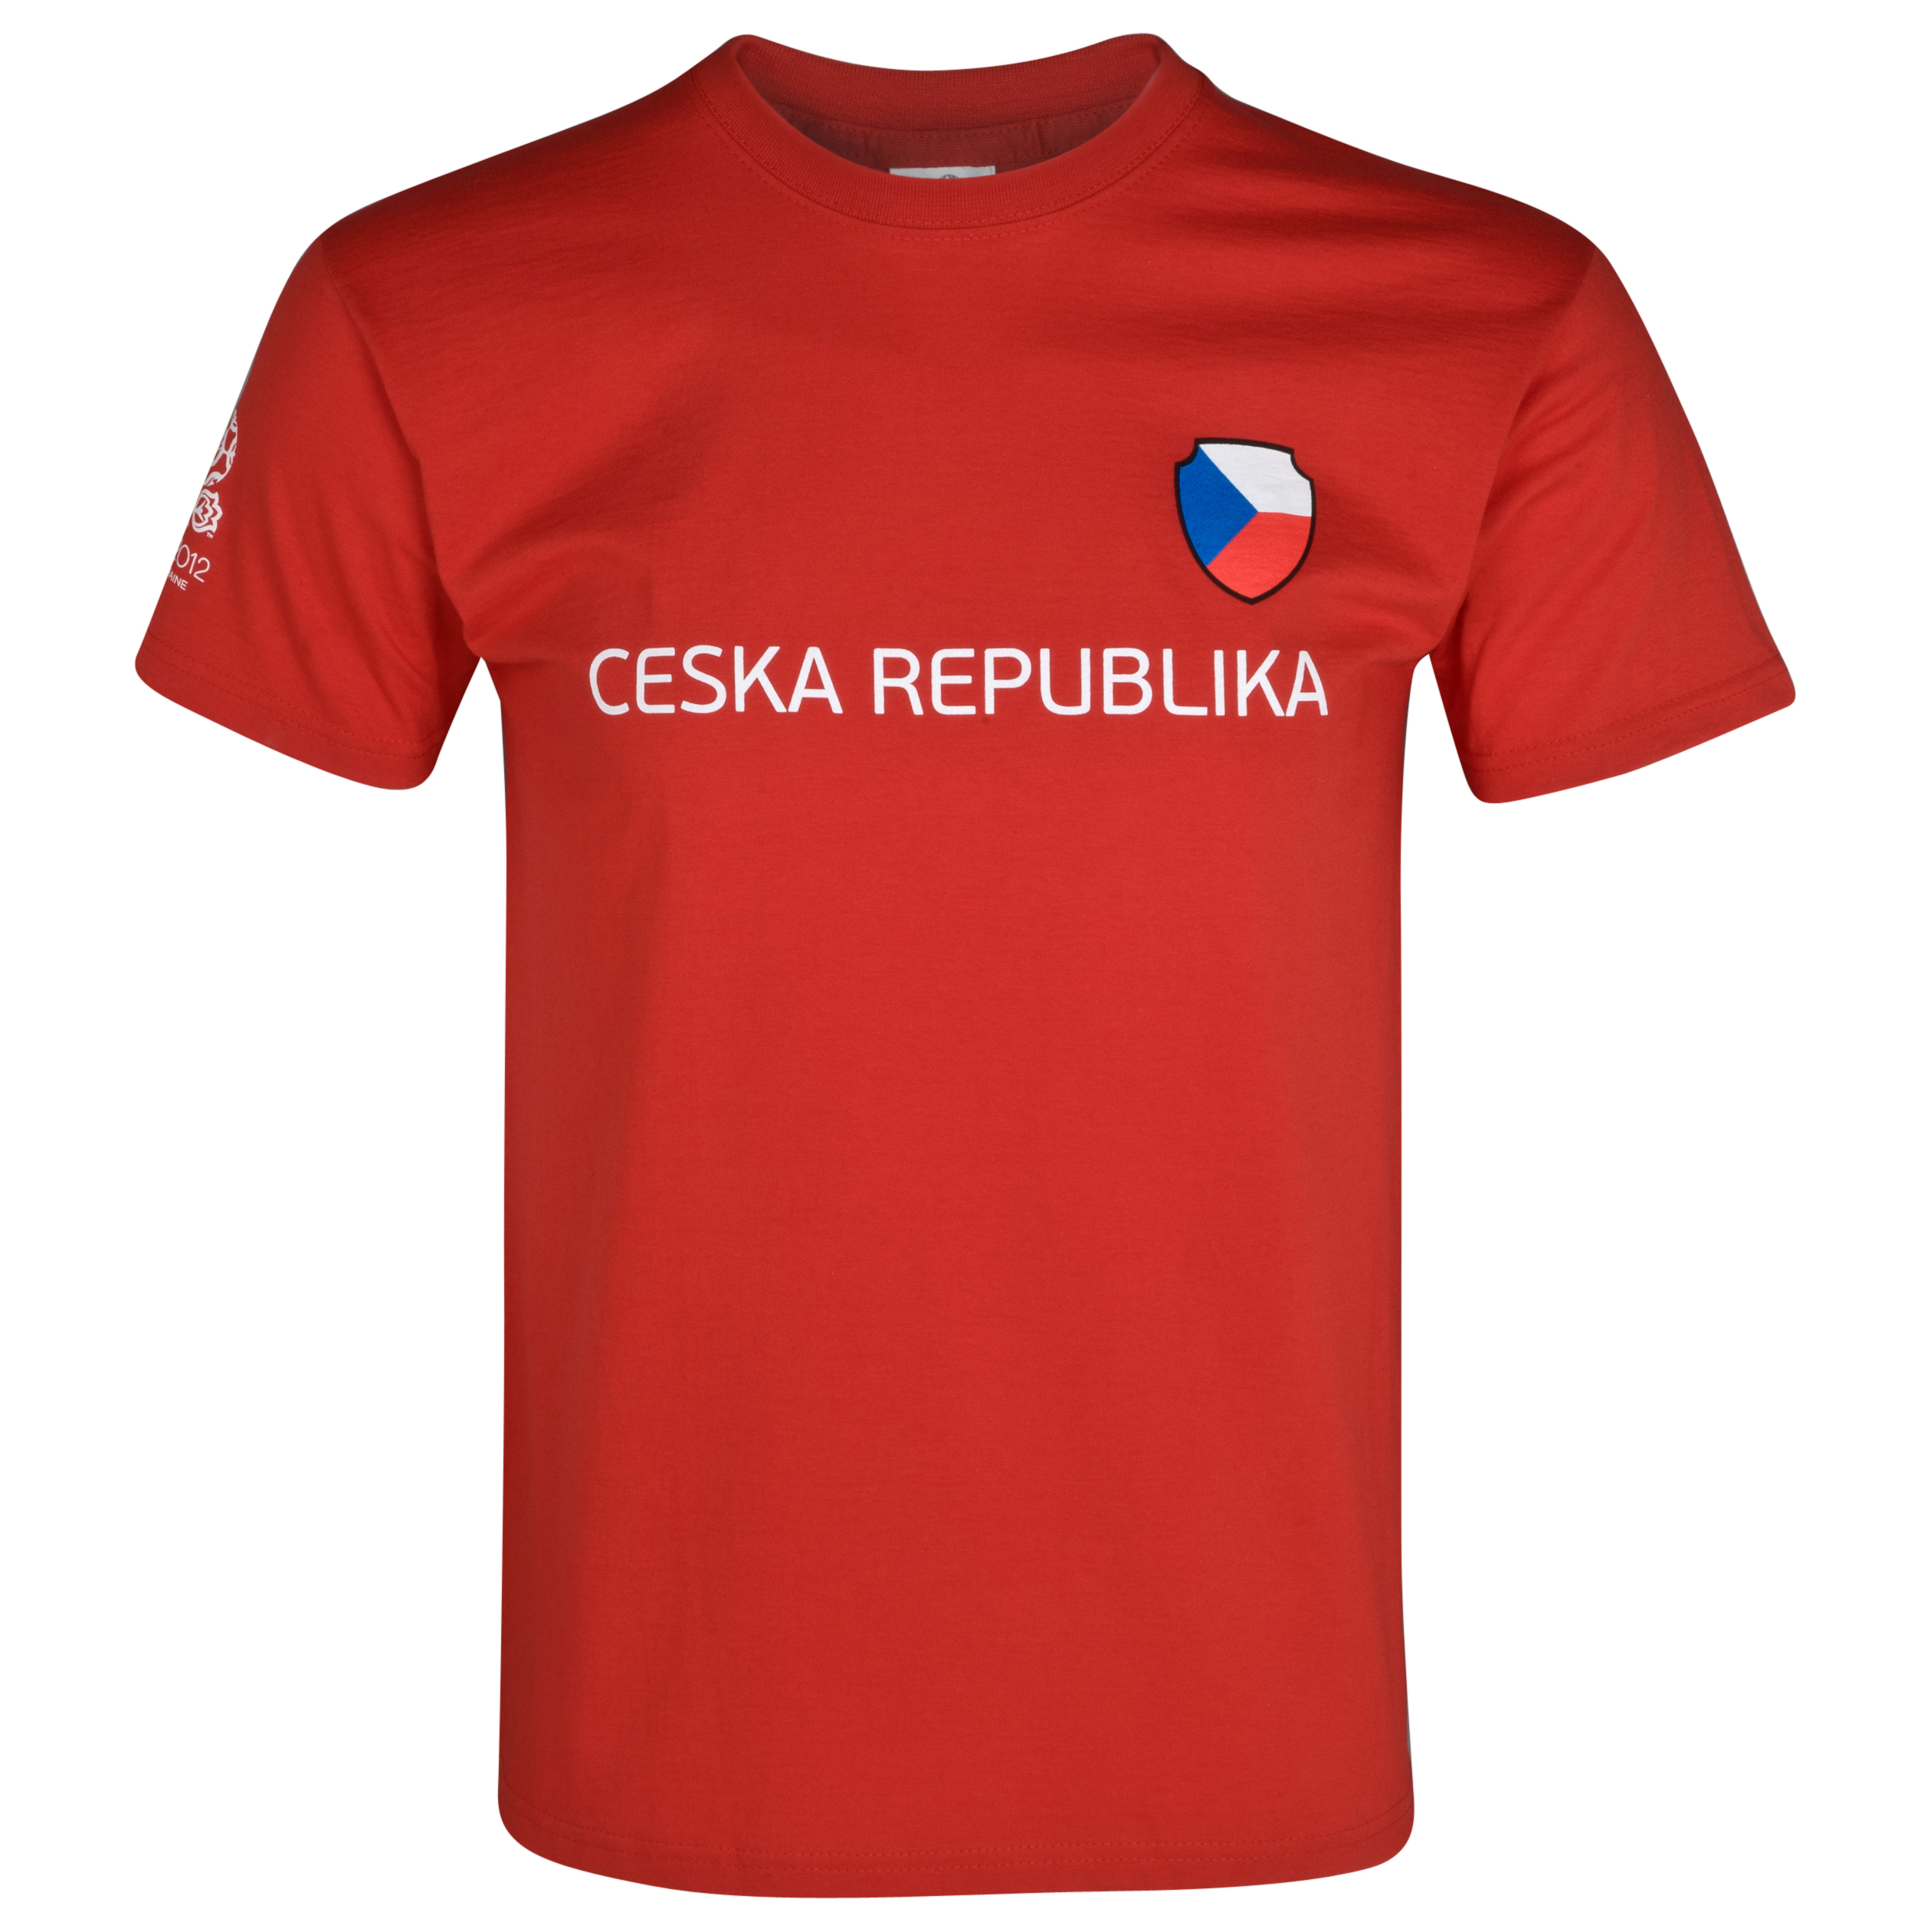 Euro 2012 Czech Republic T-Shirt - Red/White